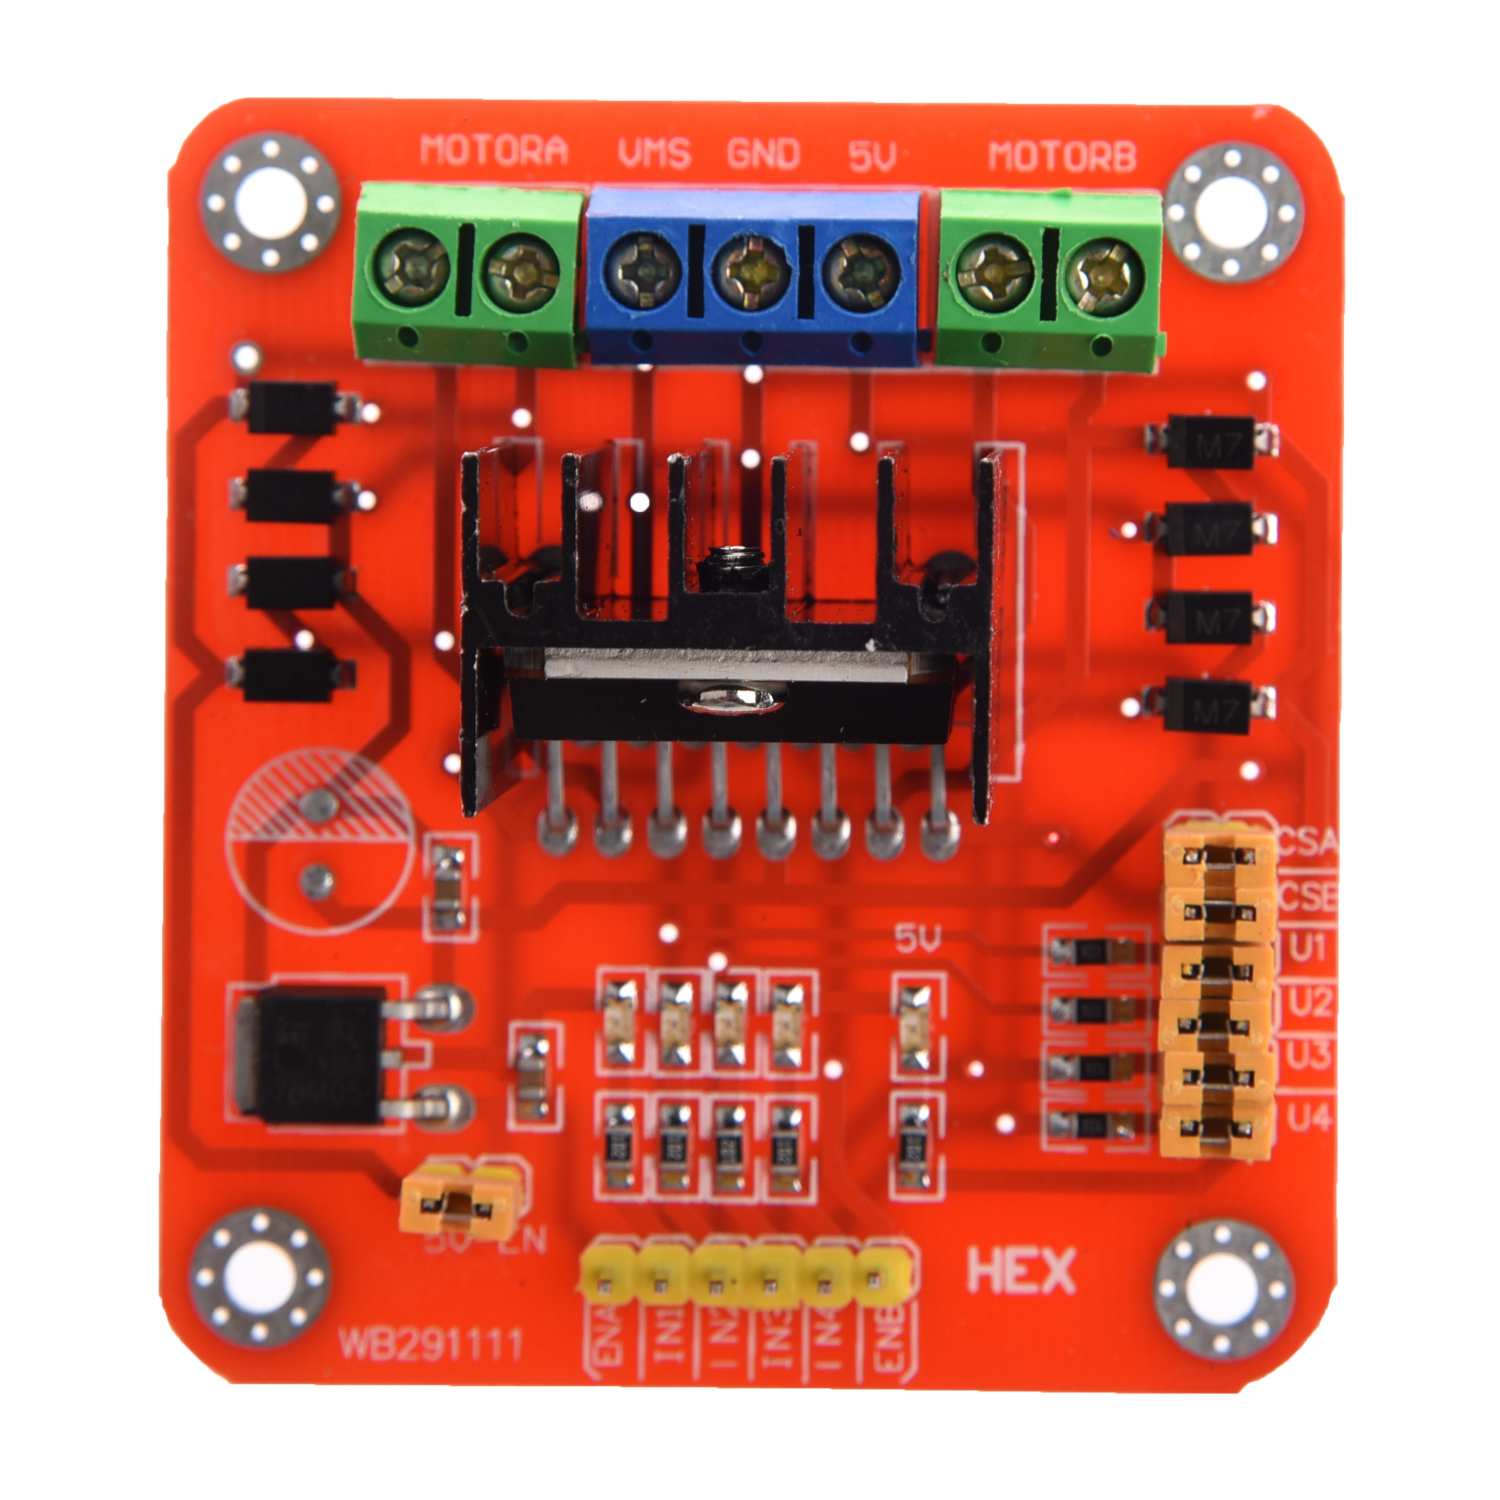 L298n Dual H Bridge Motor Driver Controller Board Module A1w7 Three Phase Dc Control Circuit Item Specifics